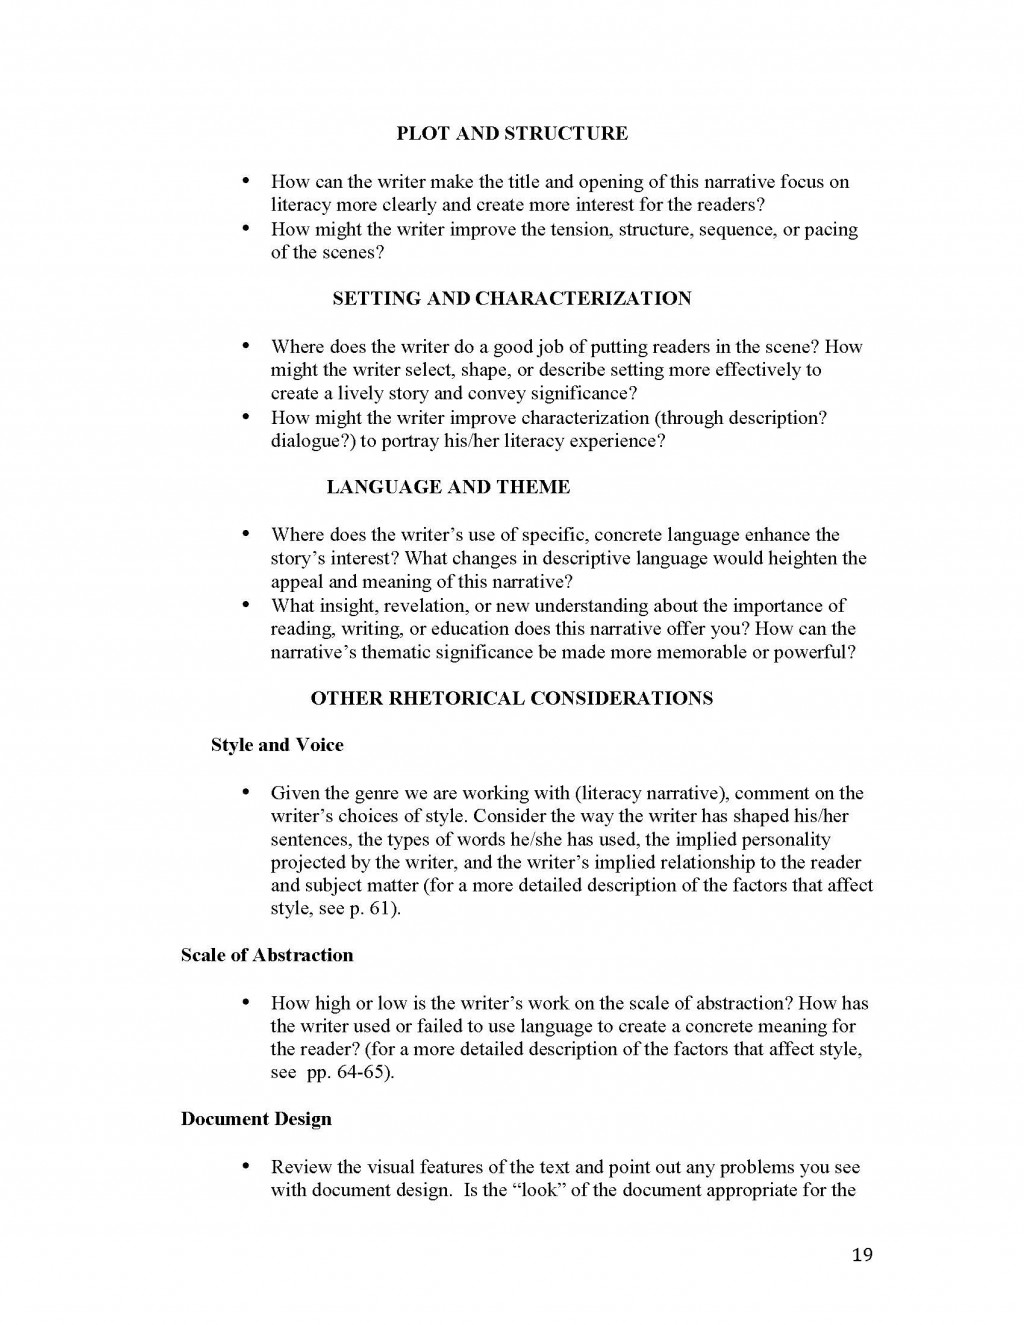 003 Literacy Narrative Essay Example Model Examples For Ielts Writing Pdf Unit 1 Instructor Copy Pa Hamburger Spm Continuous Role Of In Phenomenal Personal Sample Digital Large